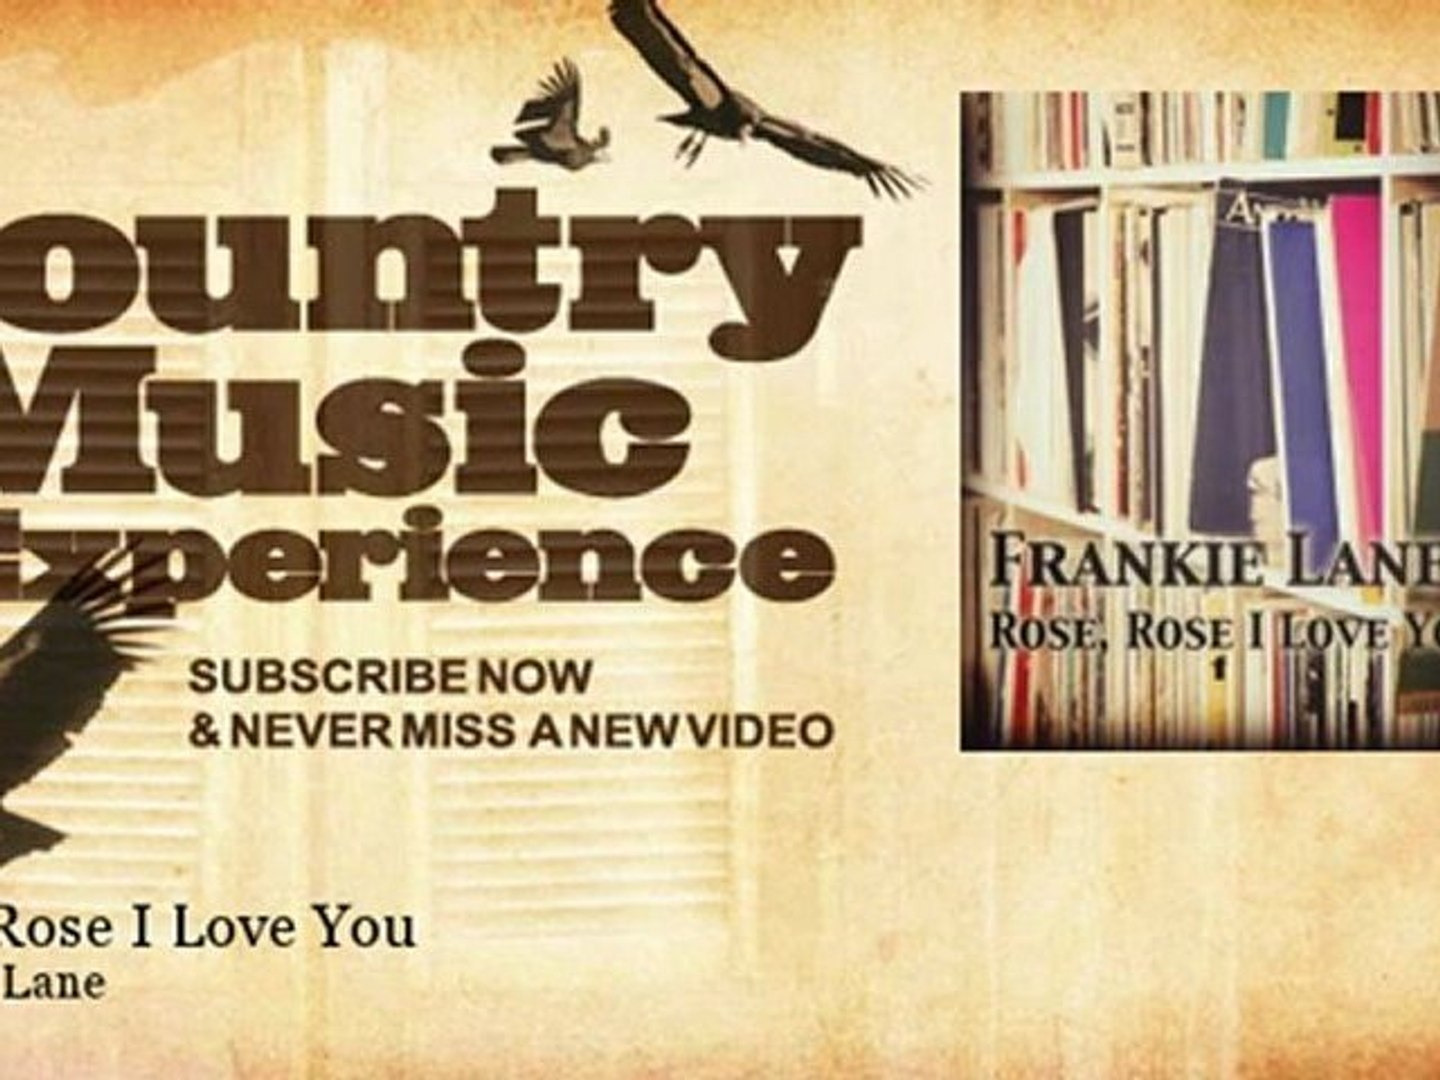 Frankie Lane - Rose, Rose I Love You - Country Music Experience